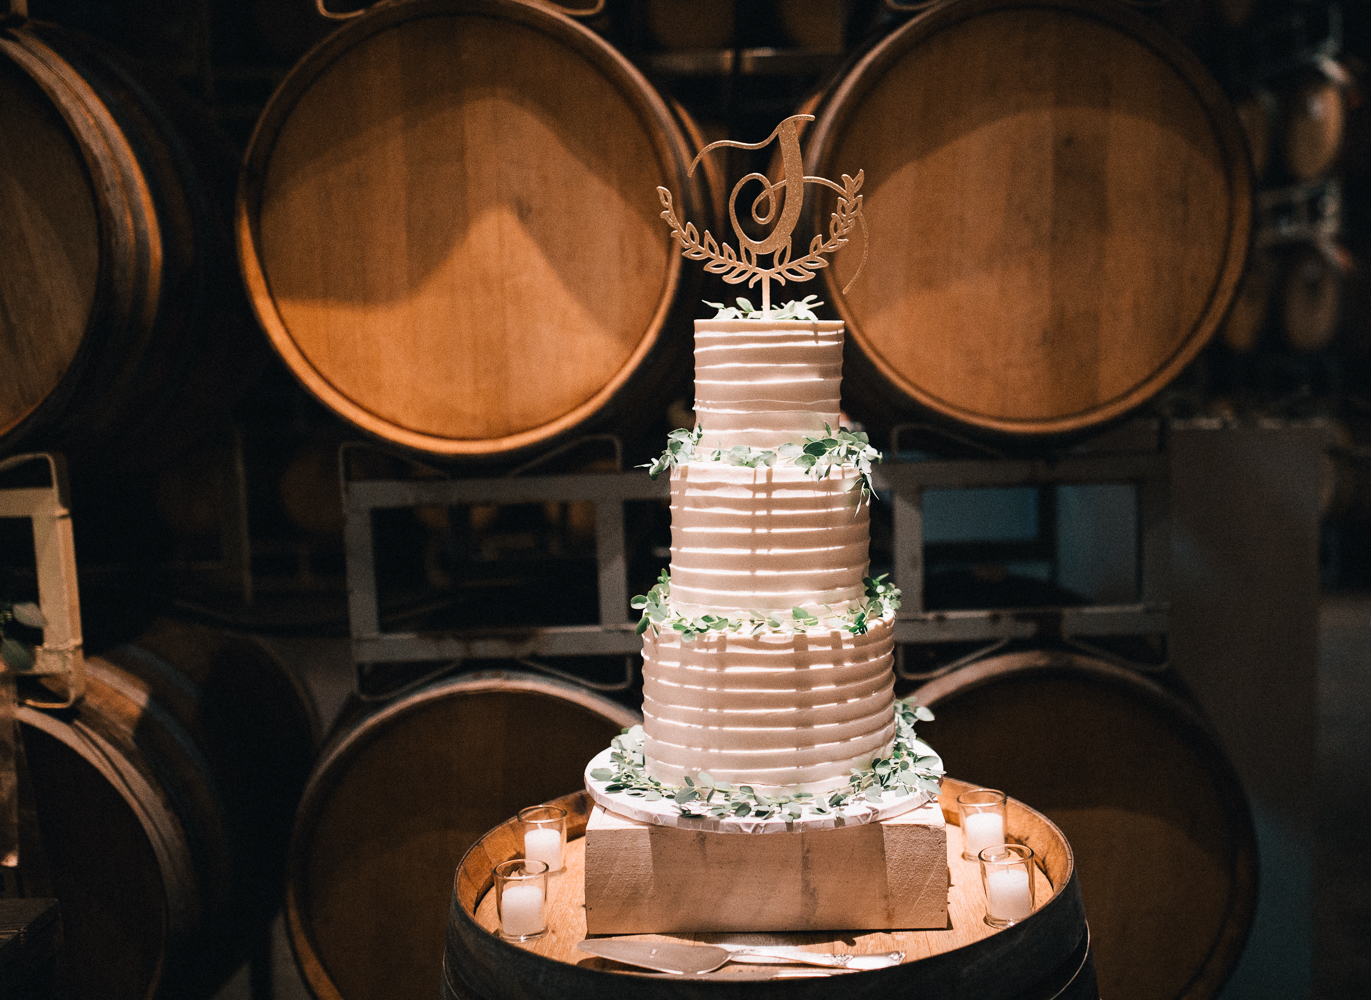 2018_08_ 112018.08.11 Cline Vinyard Wedding Blog Photos Edited For Web 0065.jpg